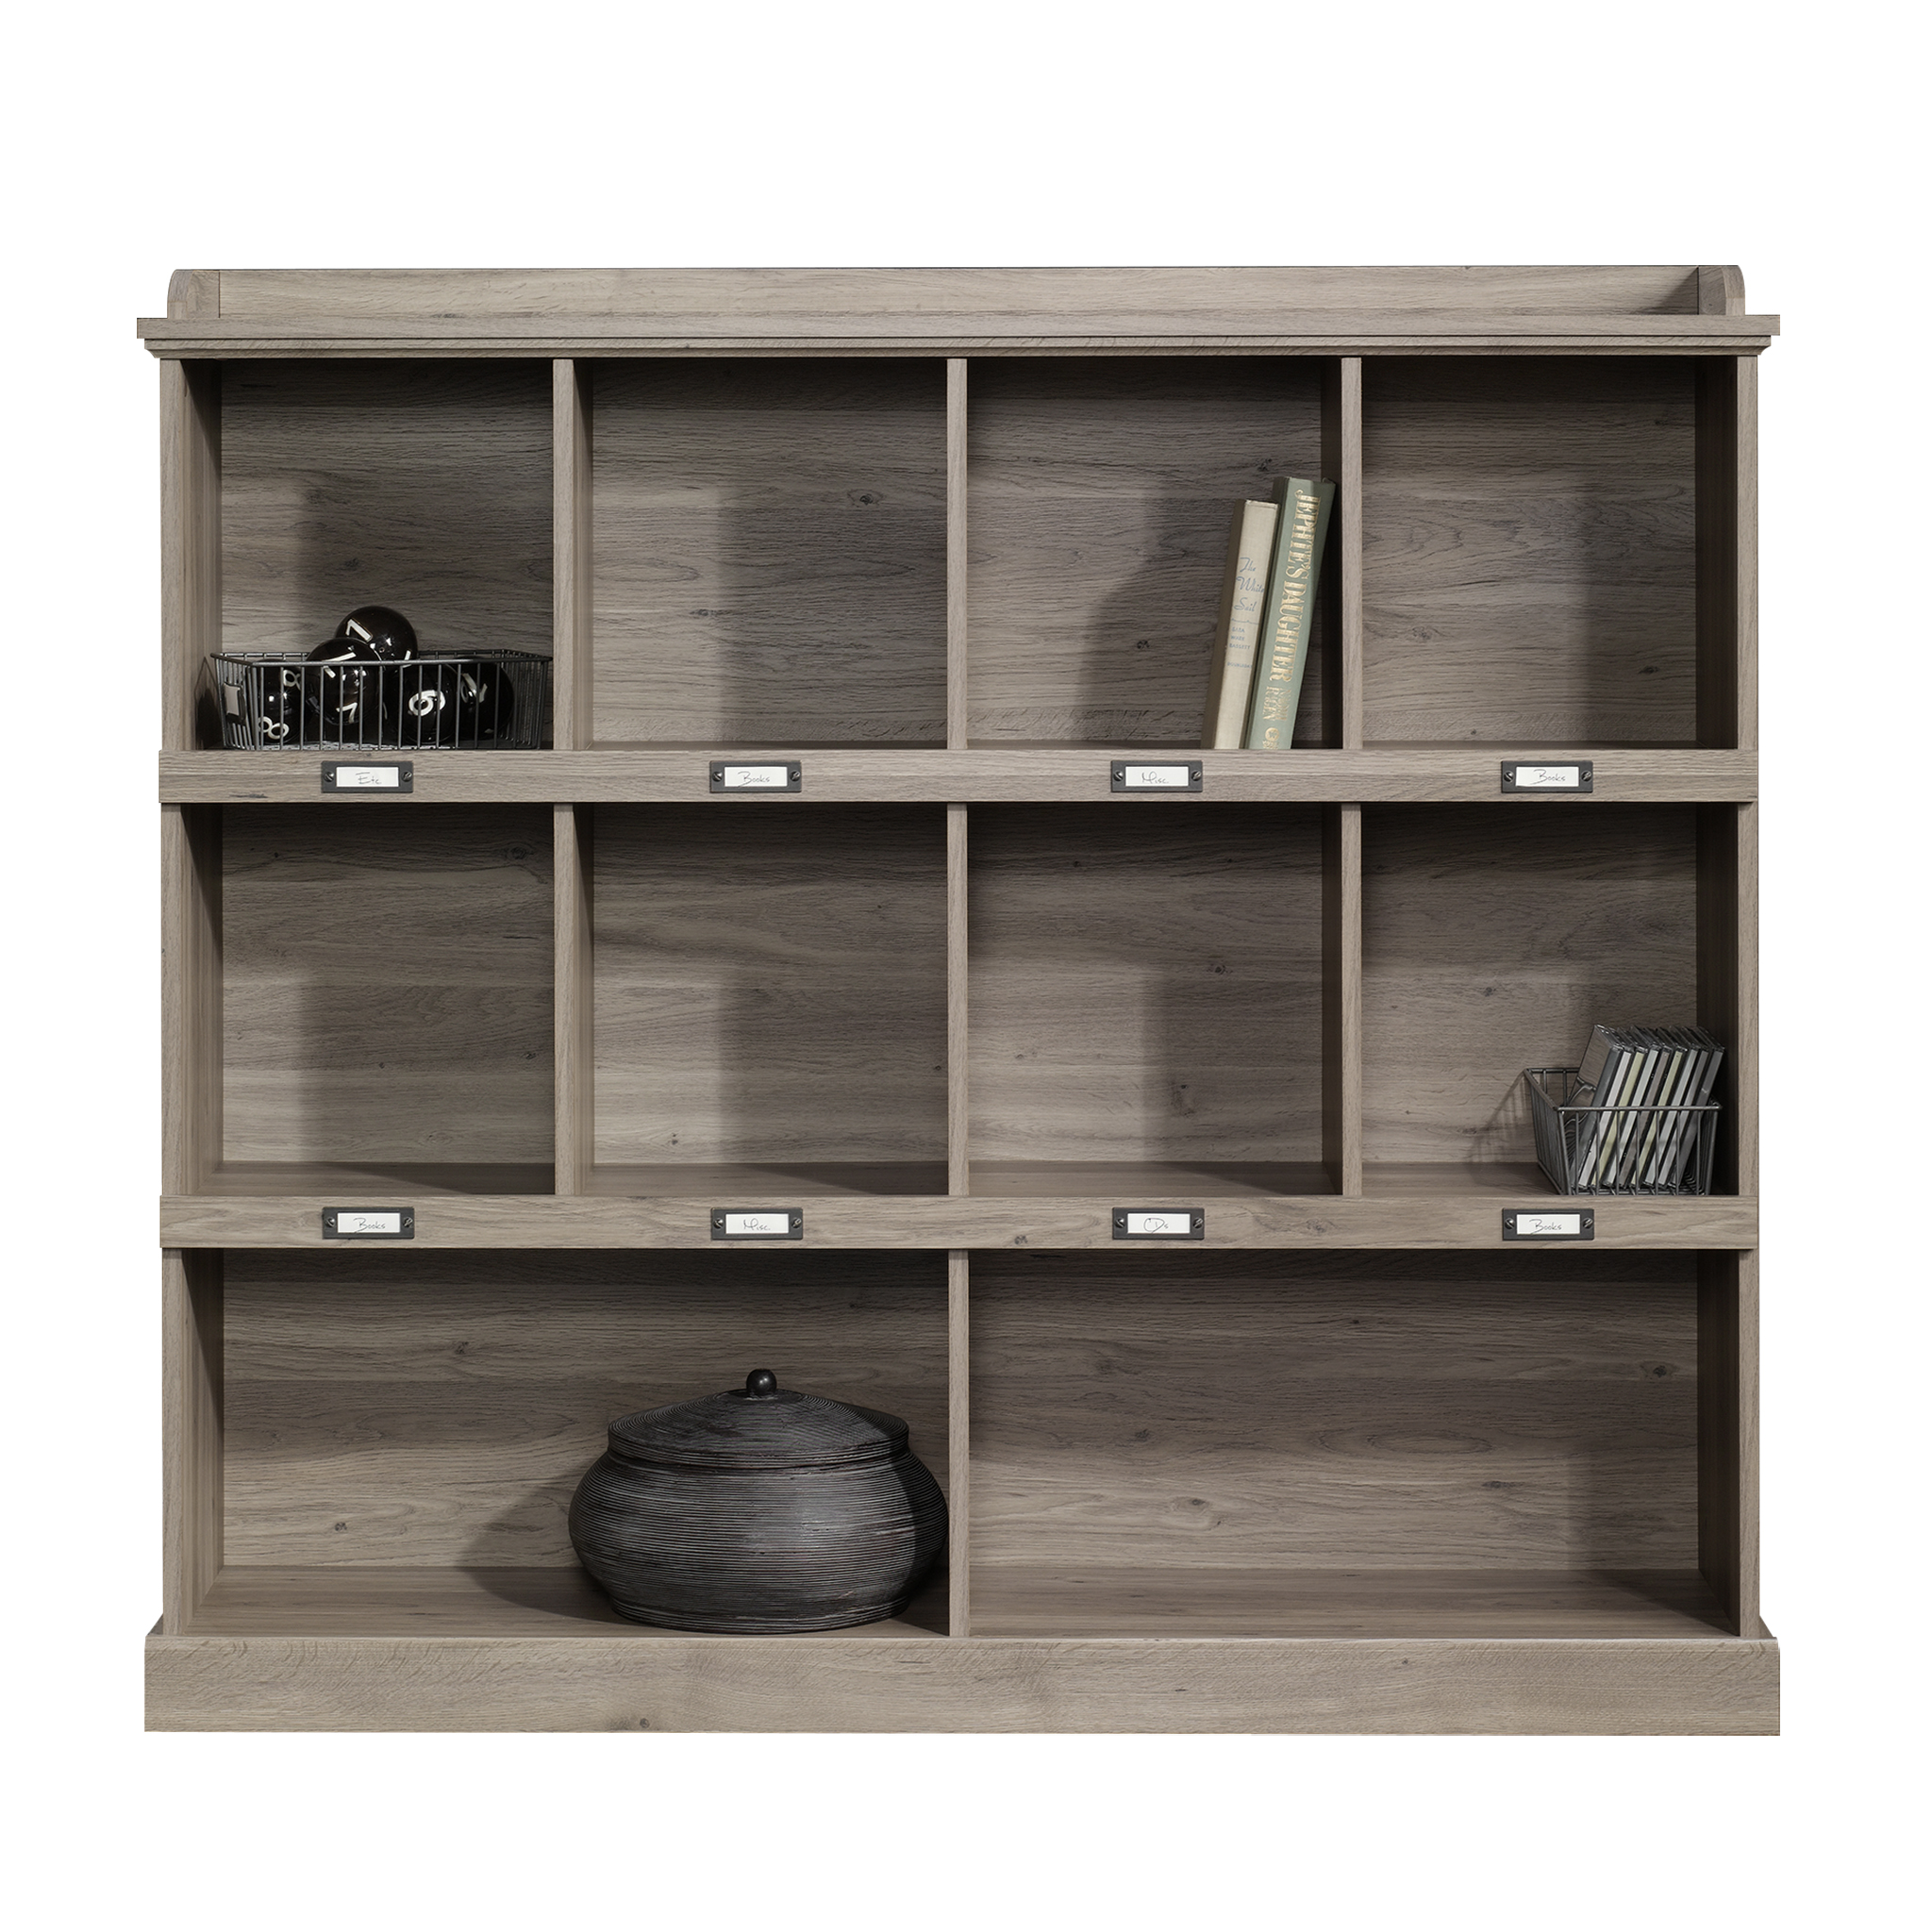 Sauder Barrister Lane Bookcase Salt Oak Finish Walmart Com